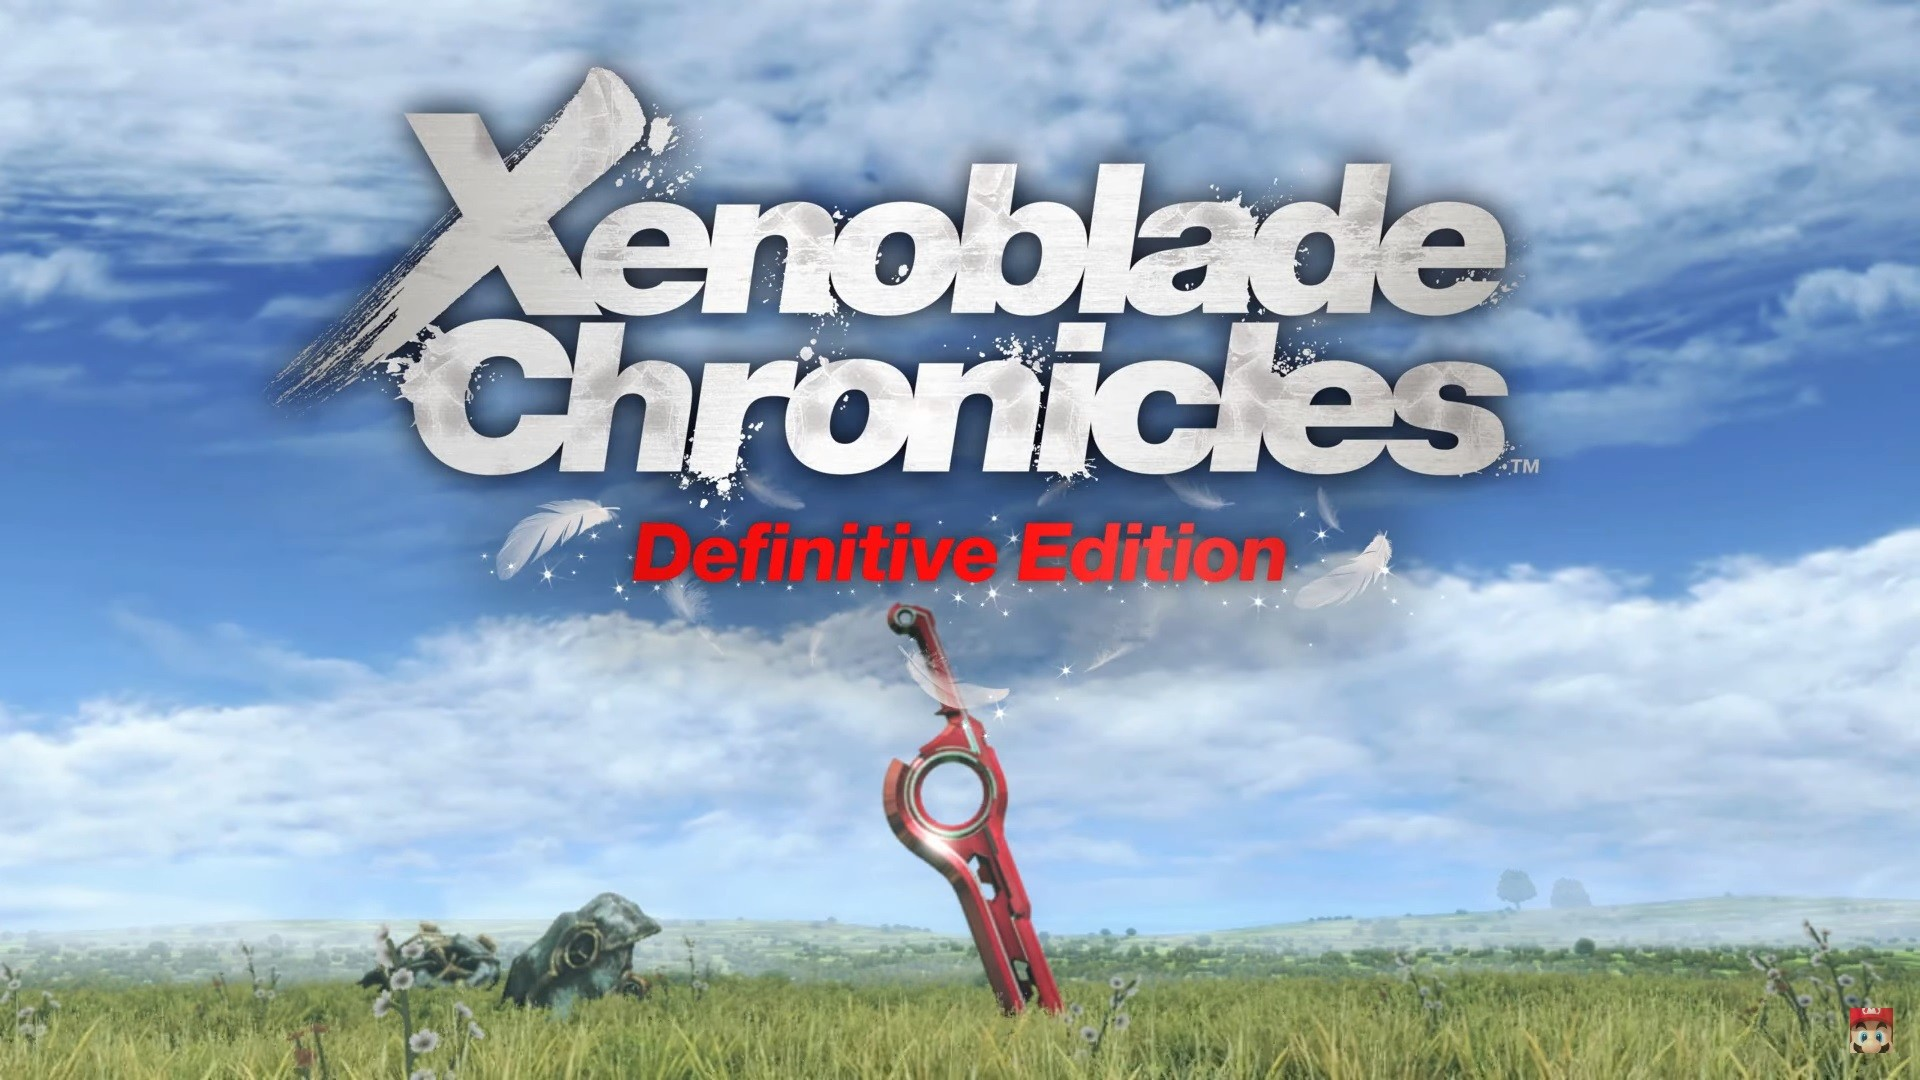 Xenoblade Chronicles Definitive Edition Is Coming To The